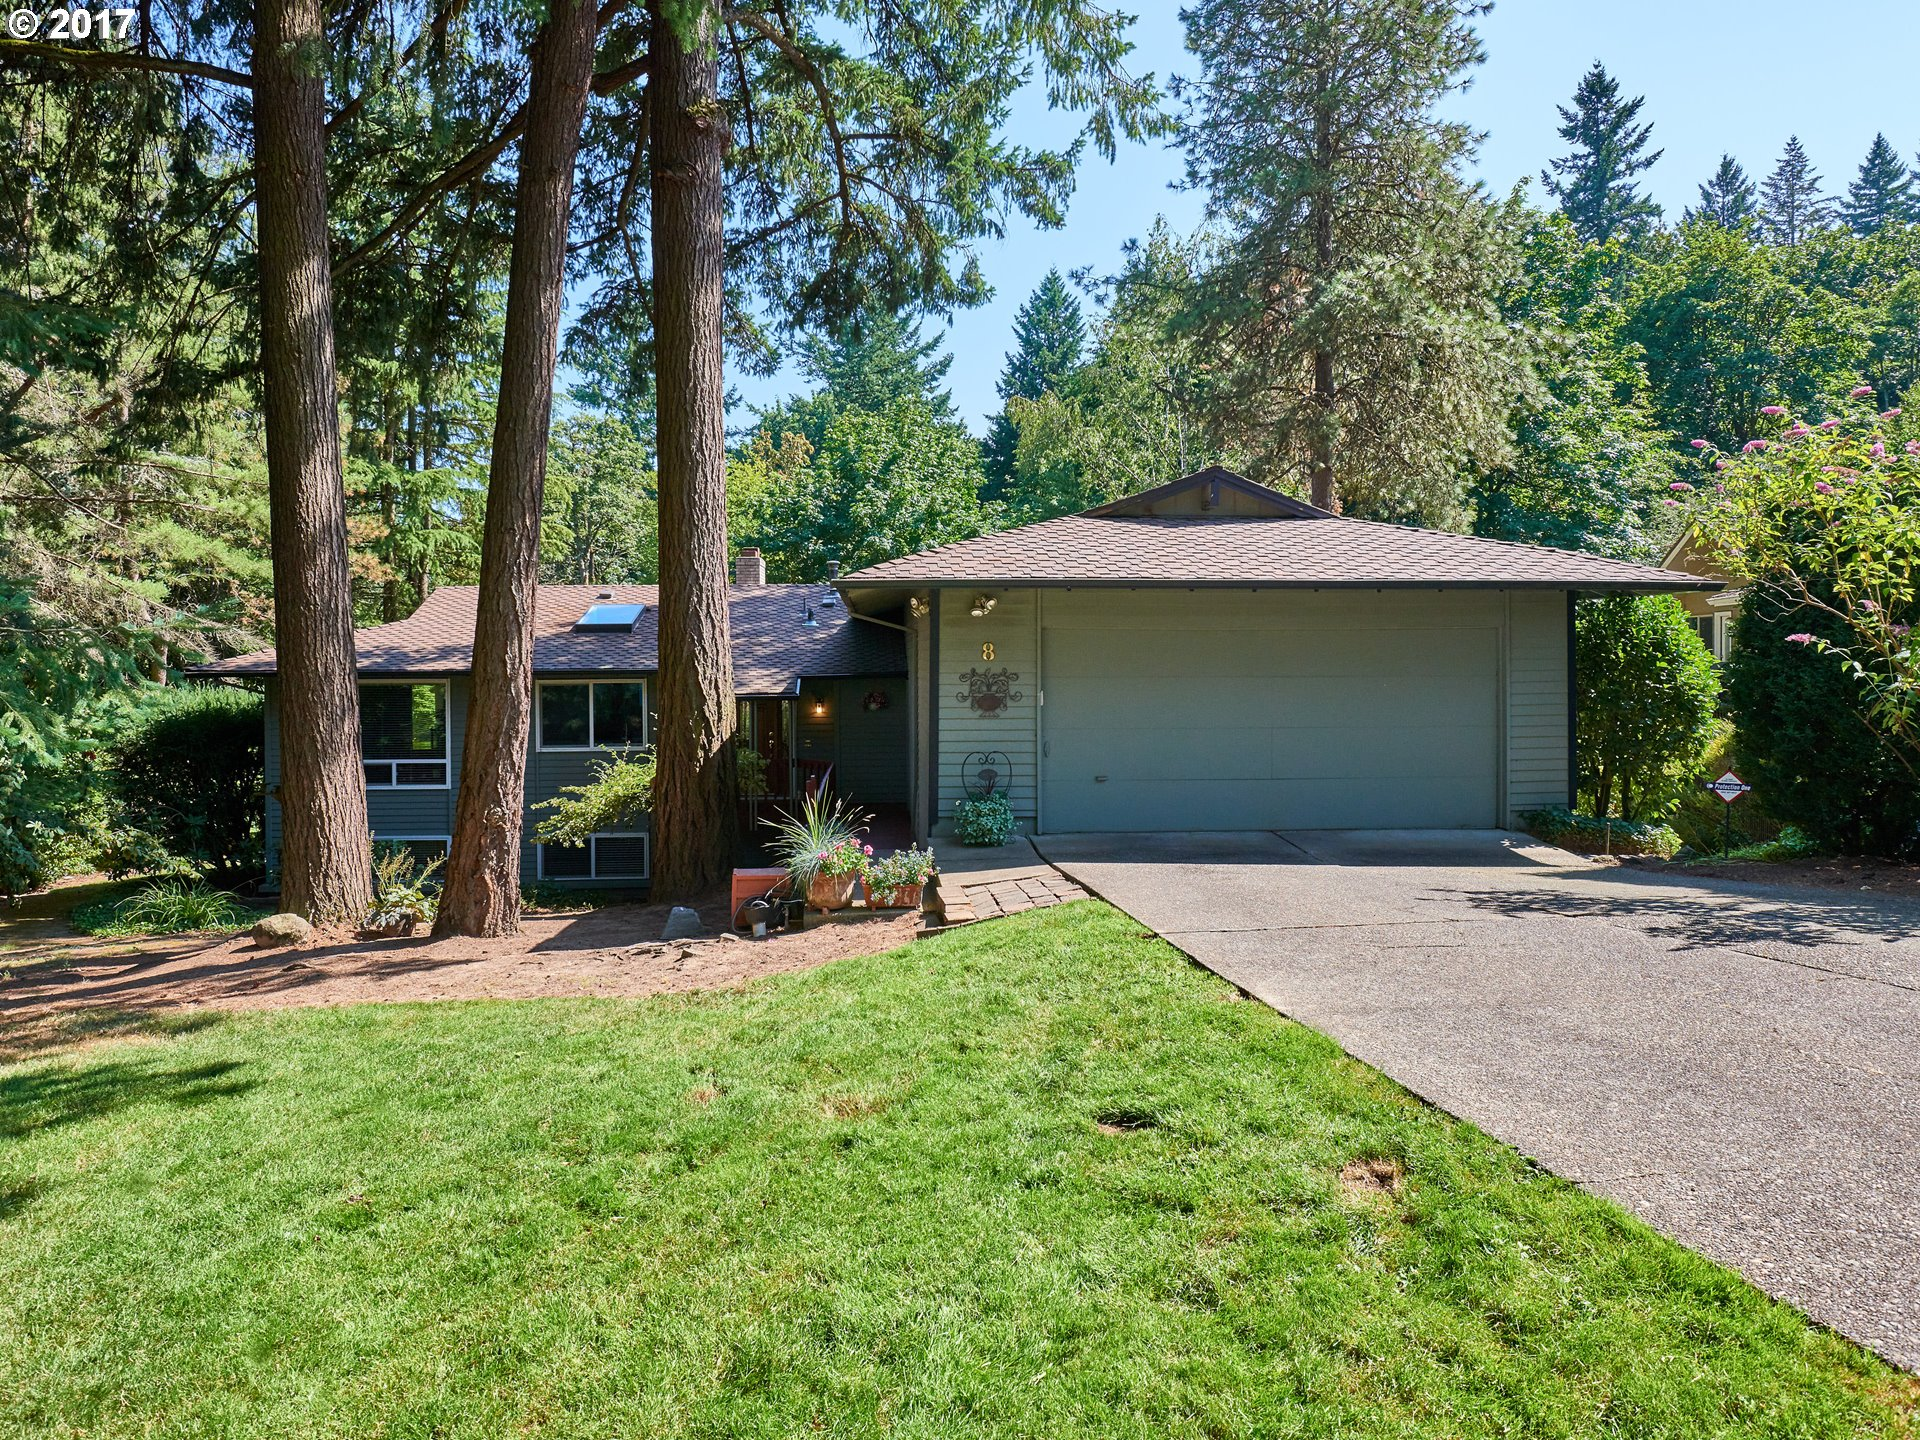 8 PIMLICO TER, Lake Oswego, OR 97035